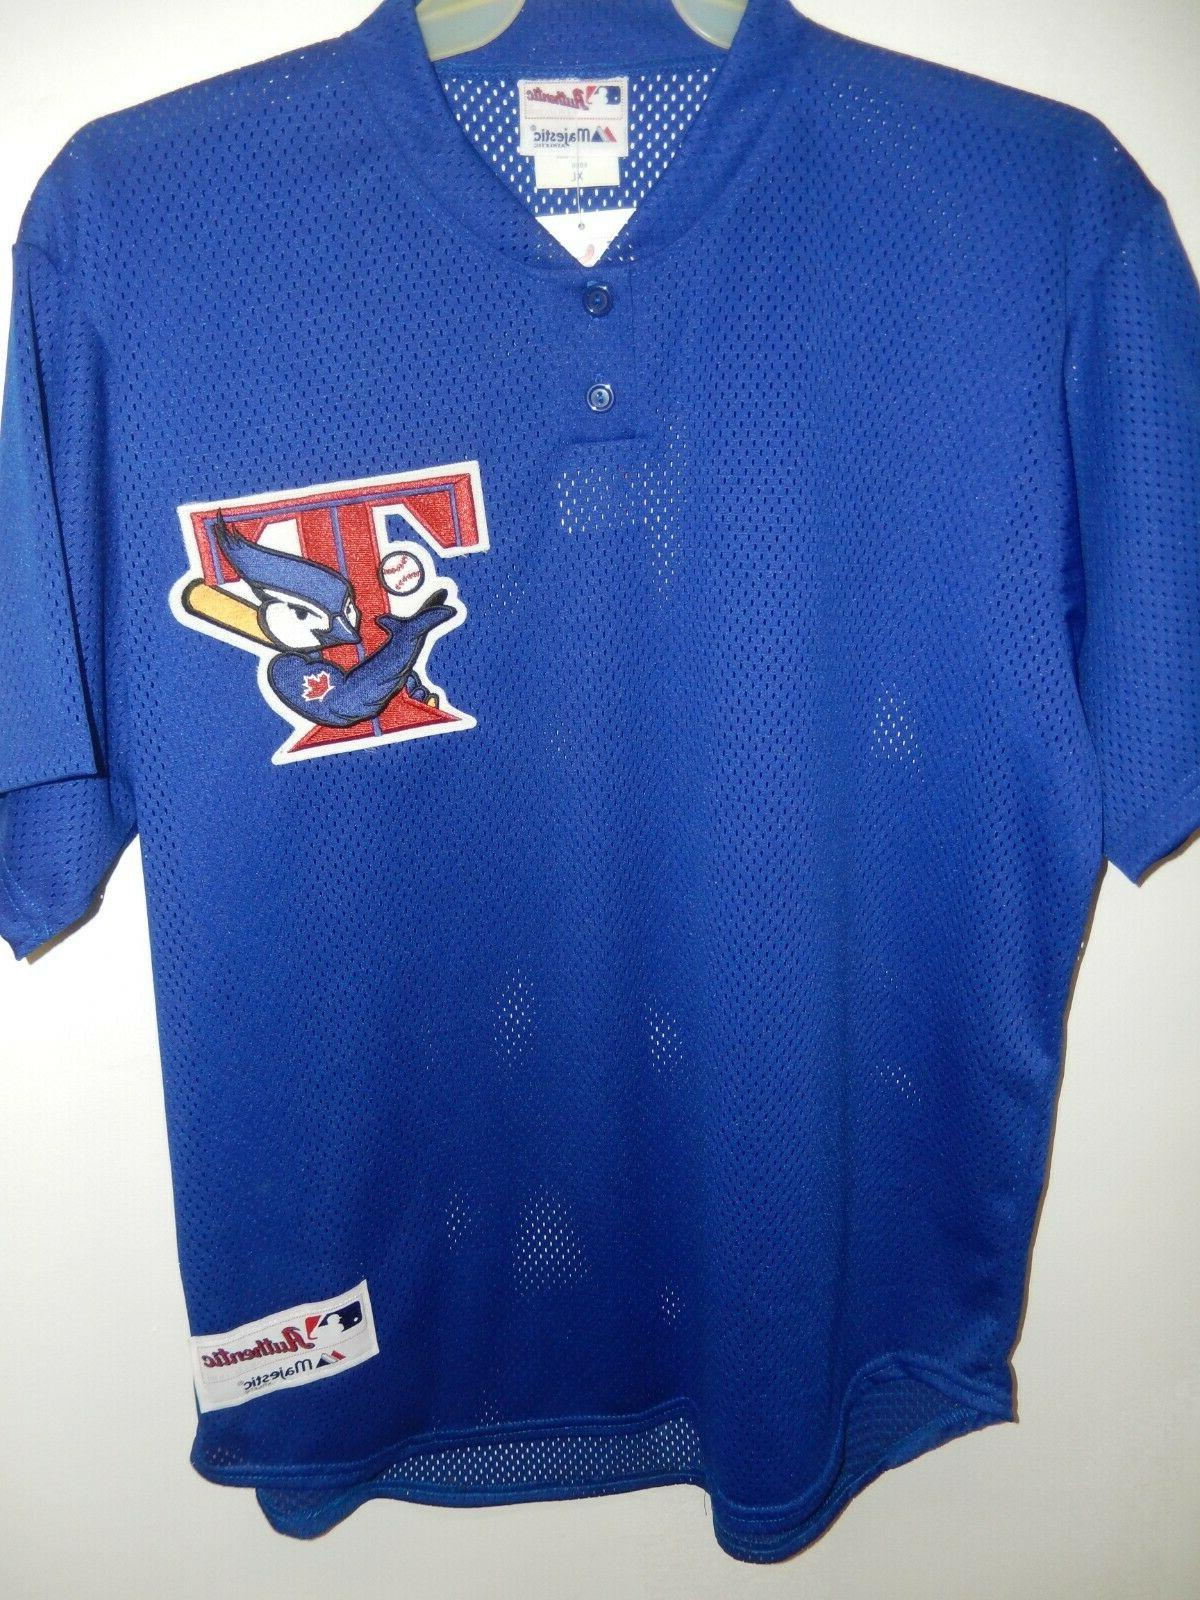 9601 5 mens 2003 toronto blue jays